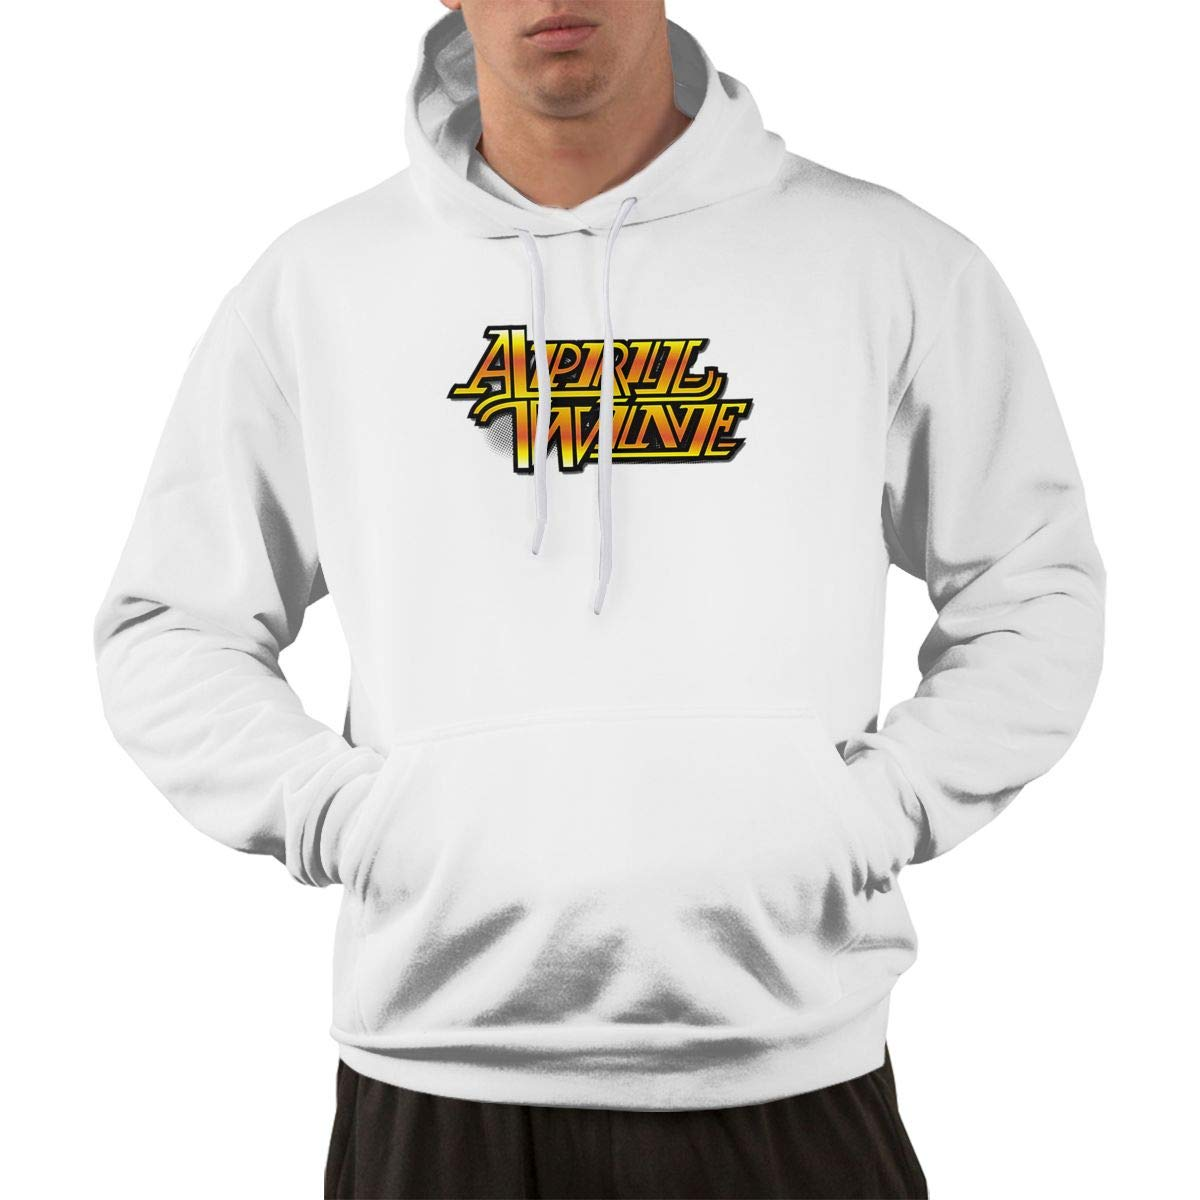 Erman Pullover Retro Print April Wine Logo Cool Hooded Shirts With Pocket M